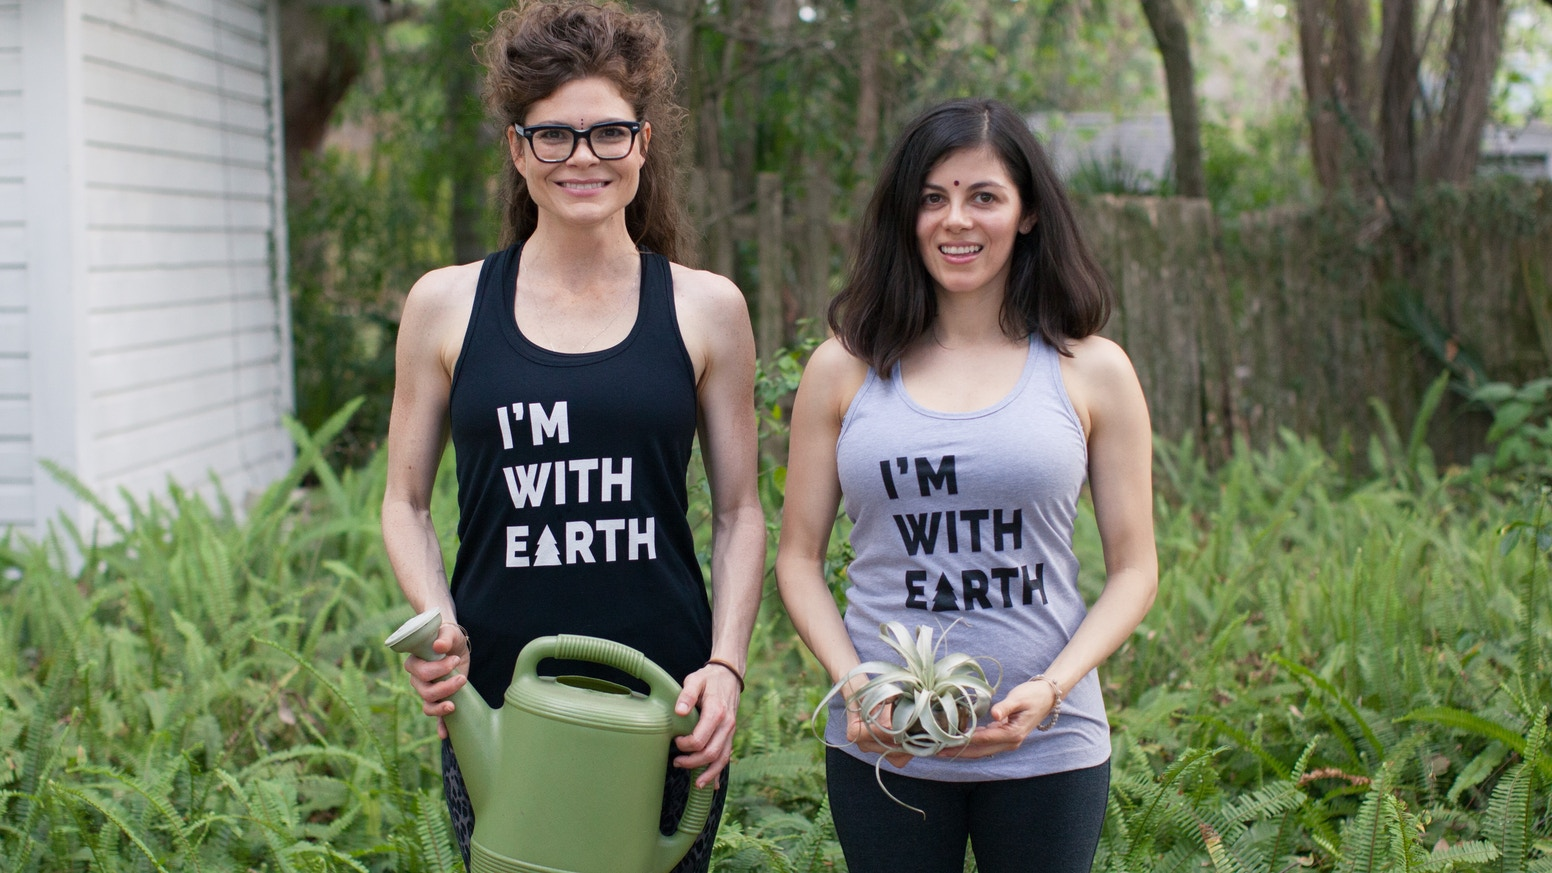 I M With Earth A Campaign For The Planet By Ilovegurus